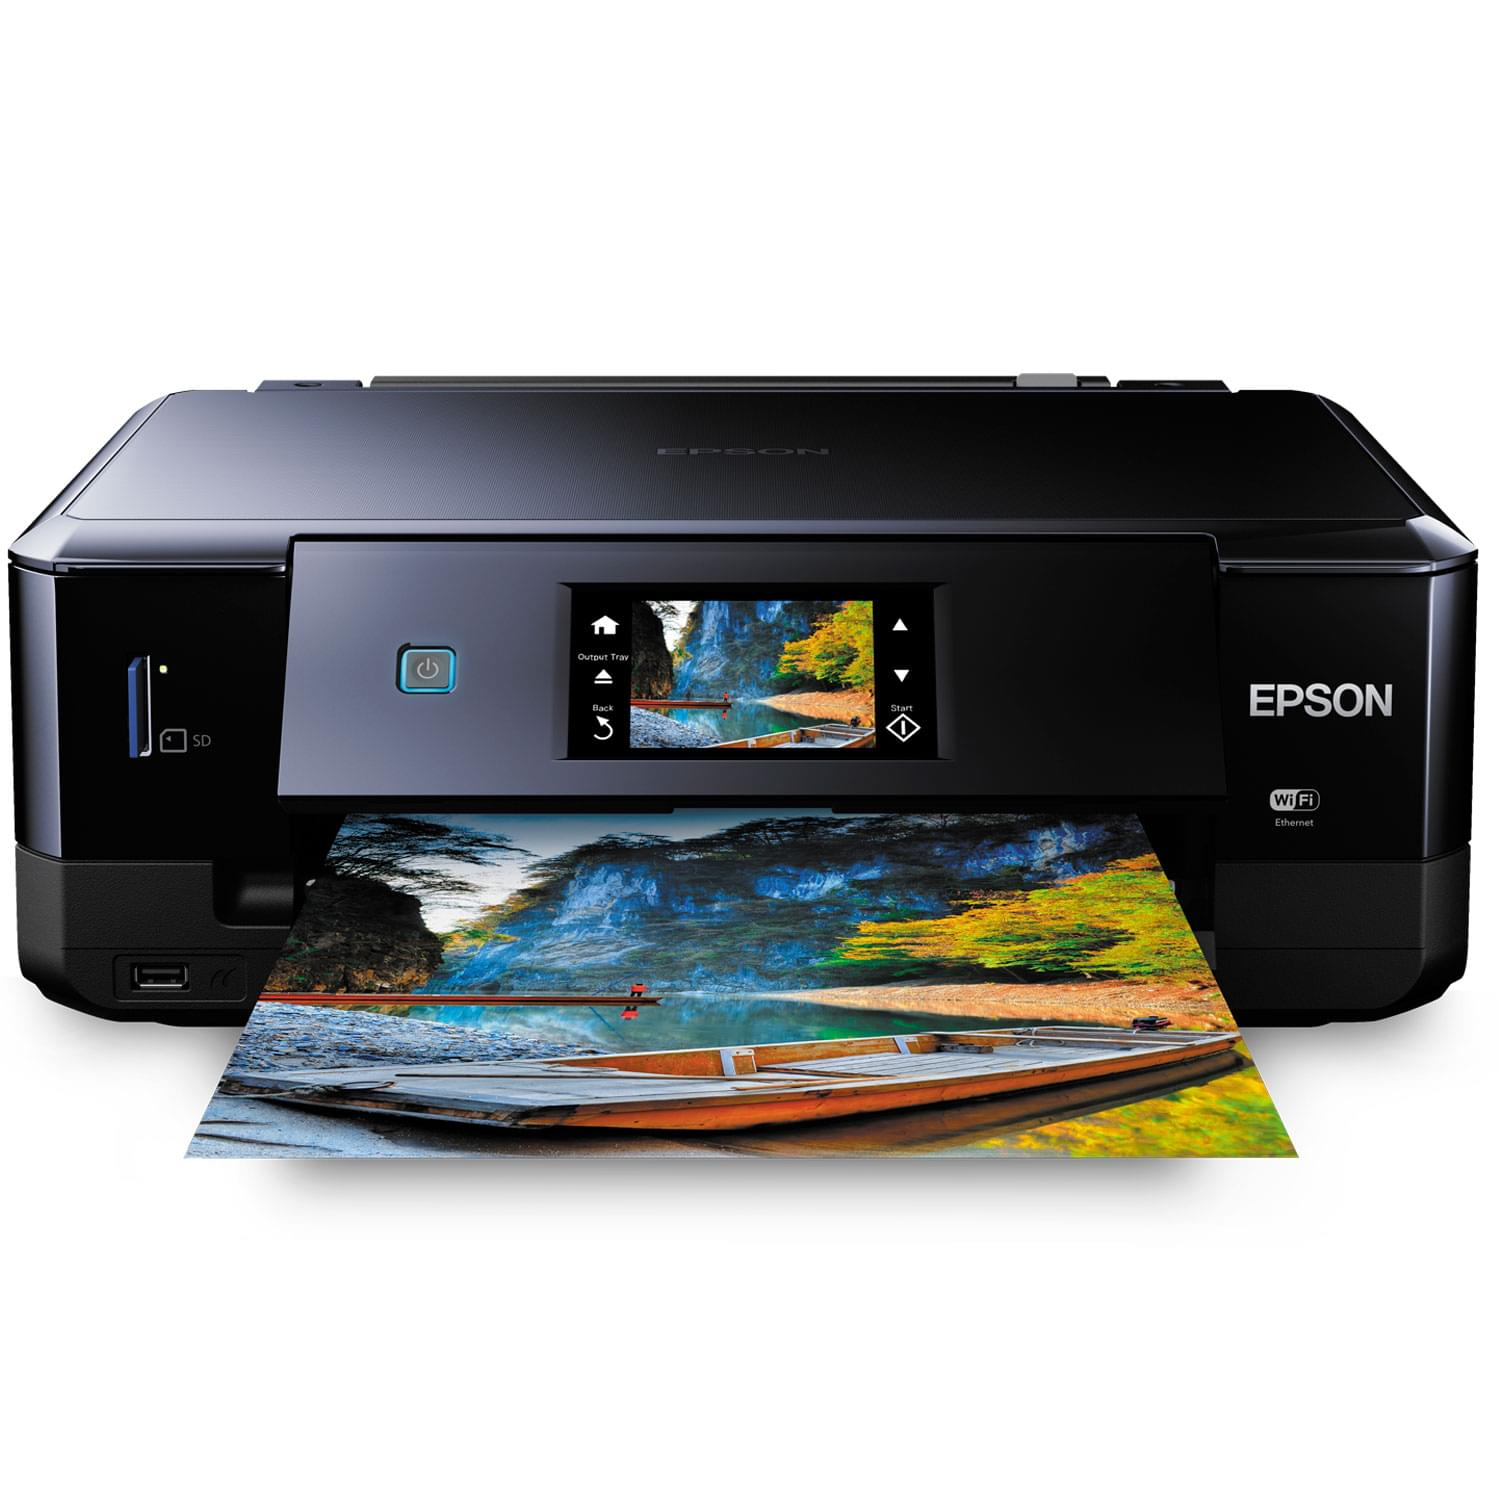 Epson Expression Photo XP-760 (C11CD96402) - Achat / Vente Imprimante Multifonction sur Cybertek.fr - 0